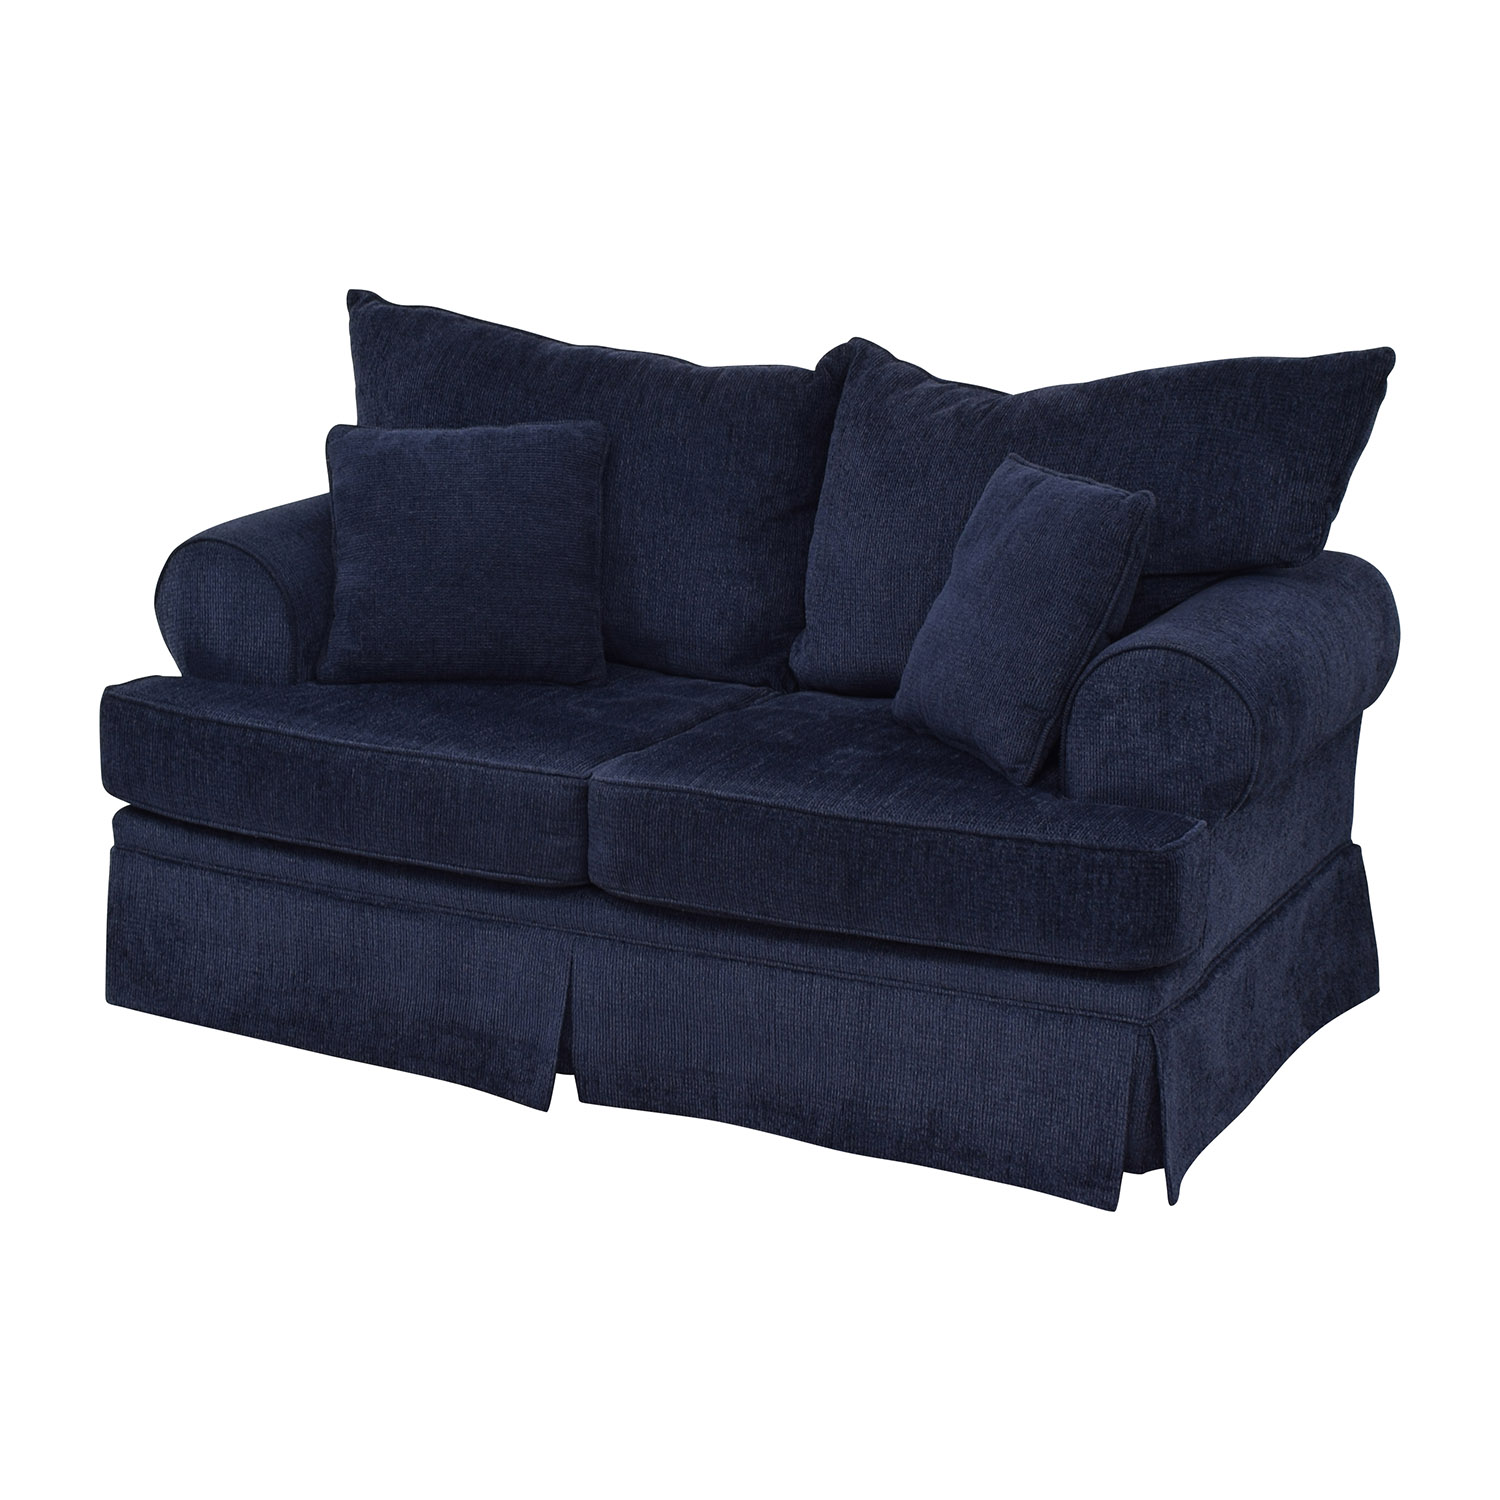 buy Bobs Furniture Deep Blue Loveseat Bobs Furniture Sofas